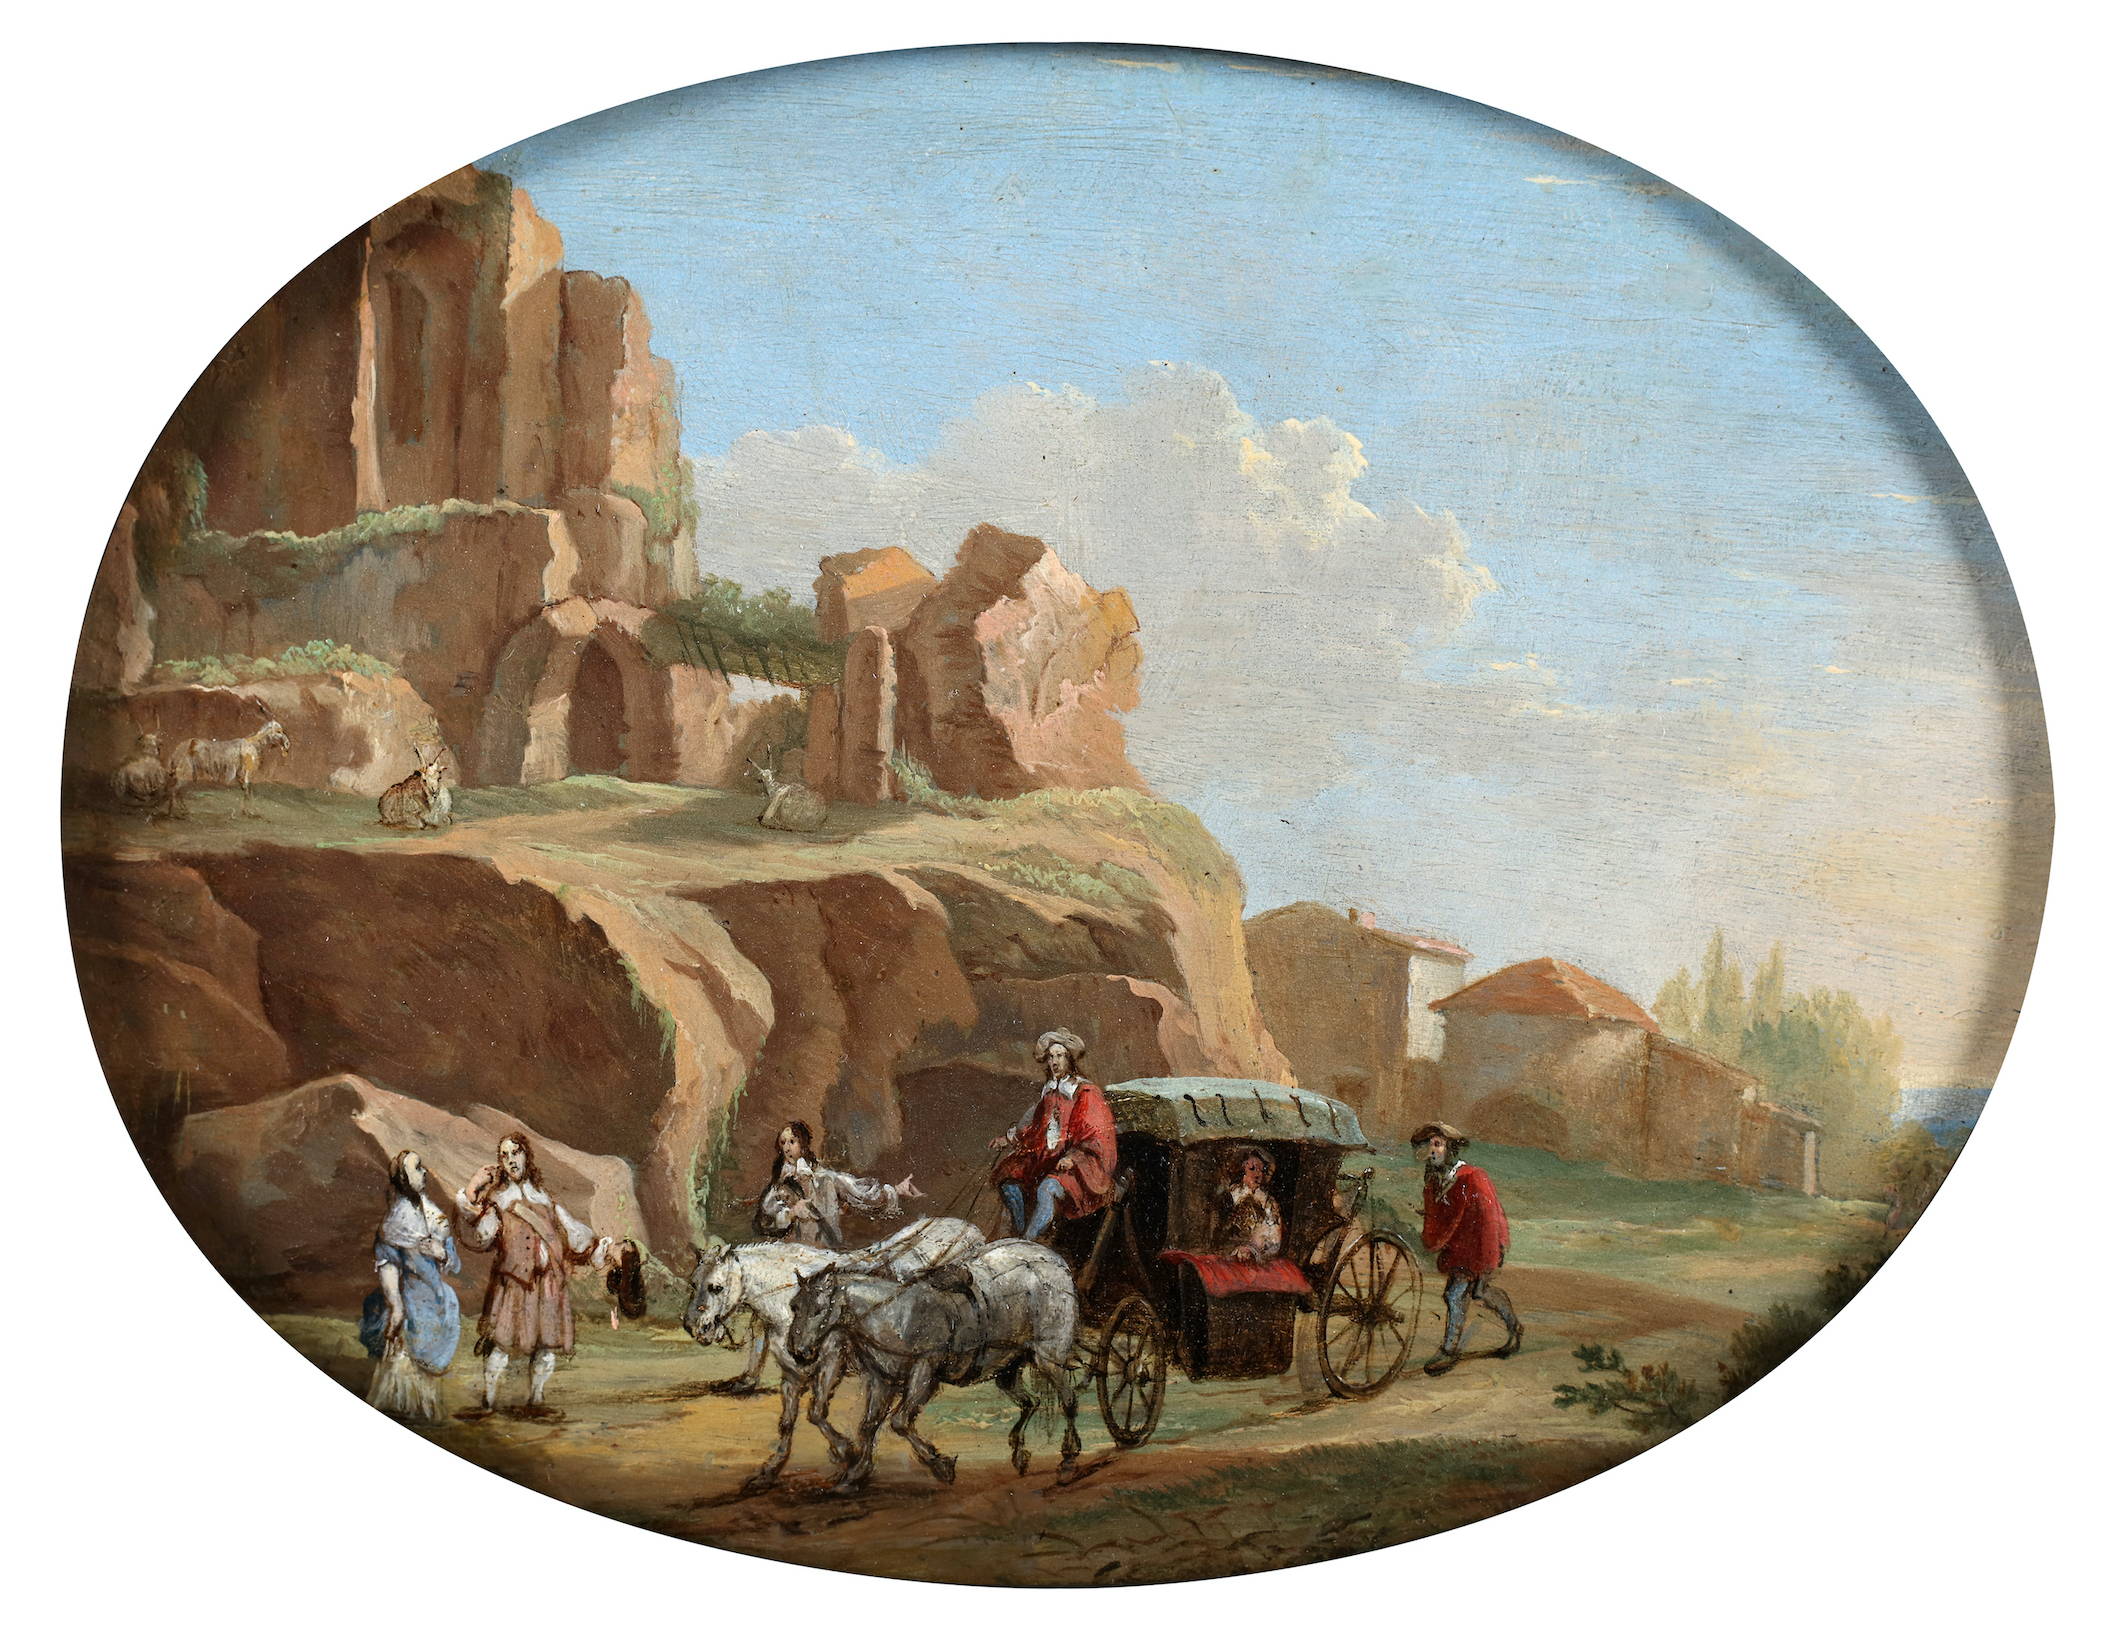 An escorted carriage in a rocky landscape